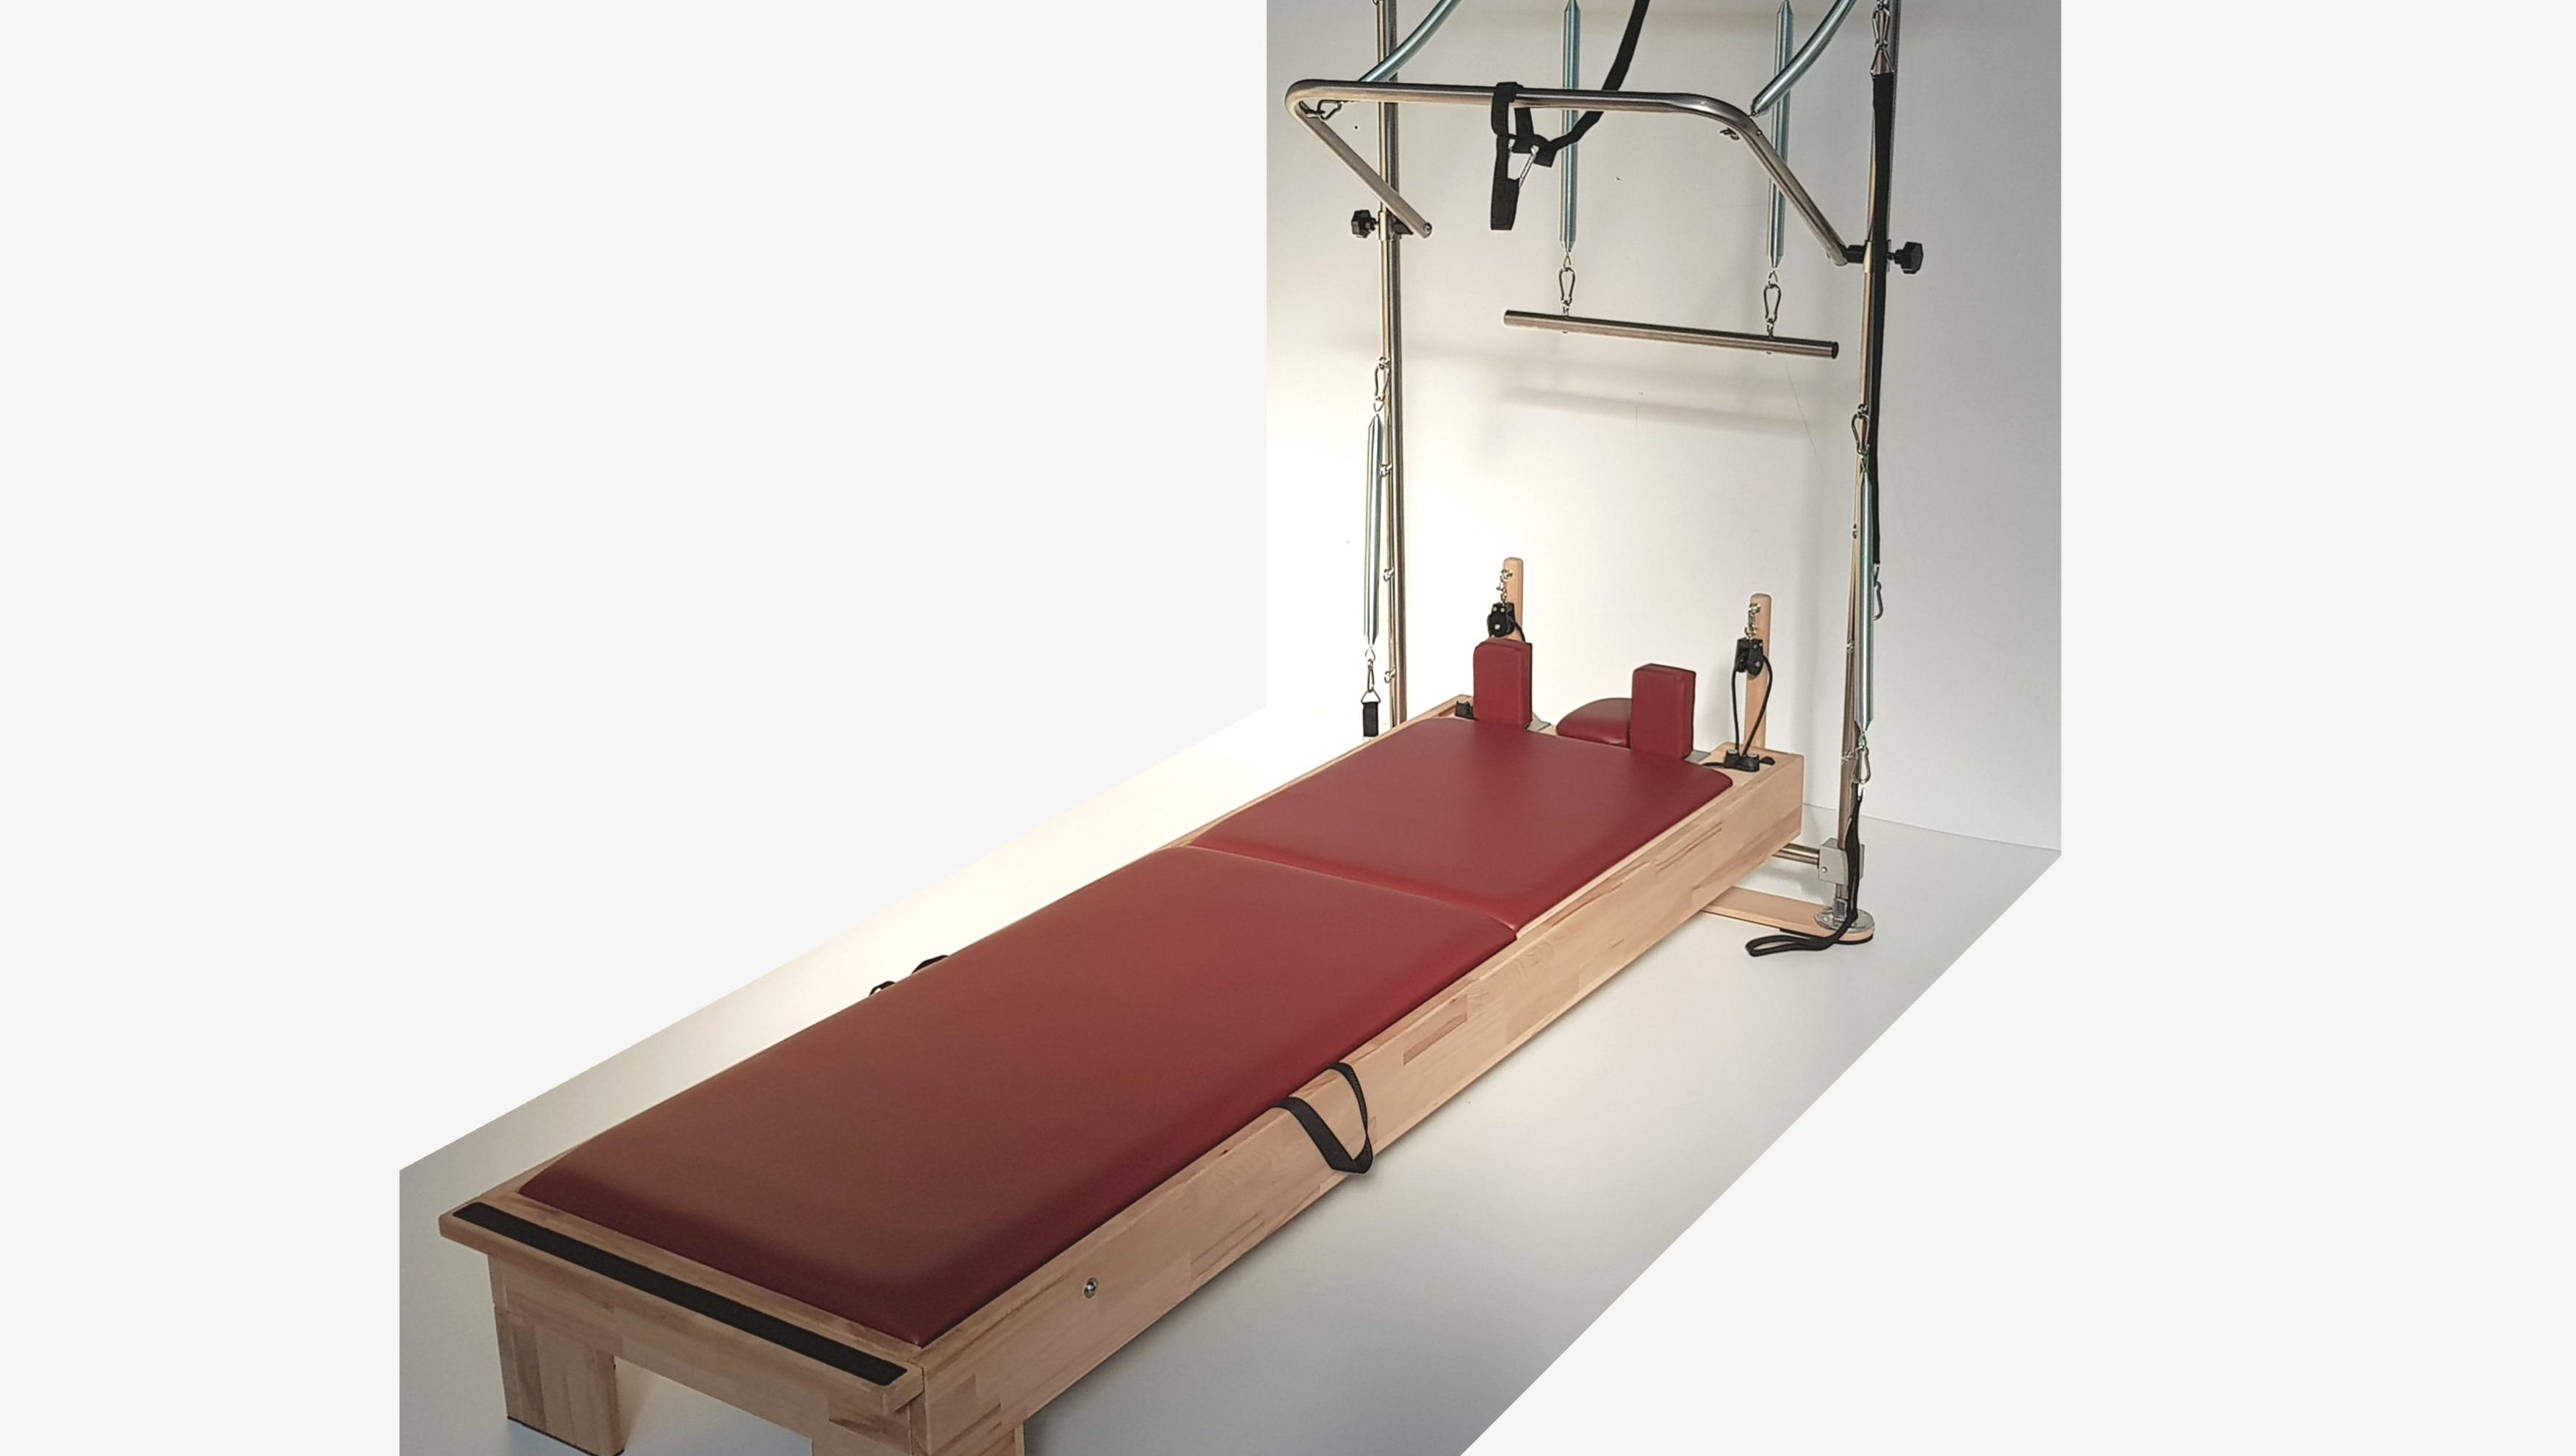 REFORMER TOWER RIBALTABILE A PARETE TPE TRADITIONAL PILATES EQUIPMENT